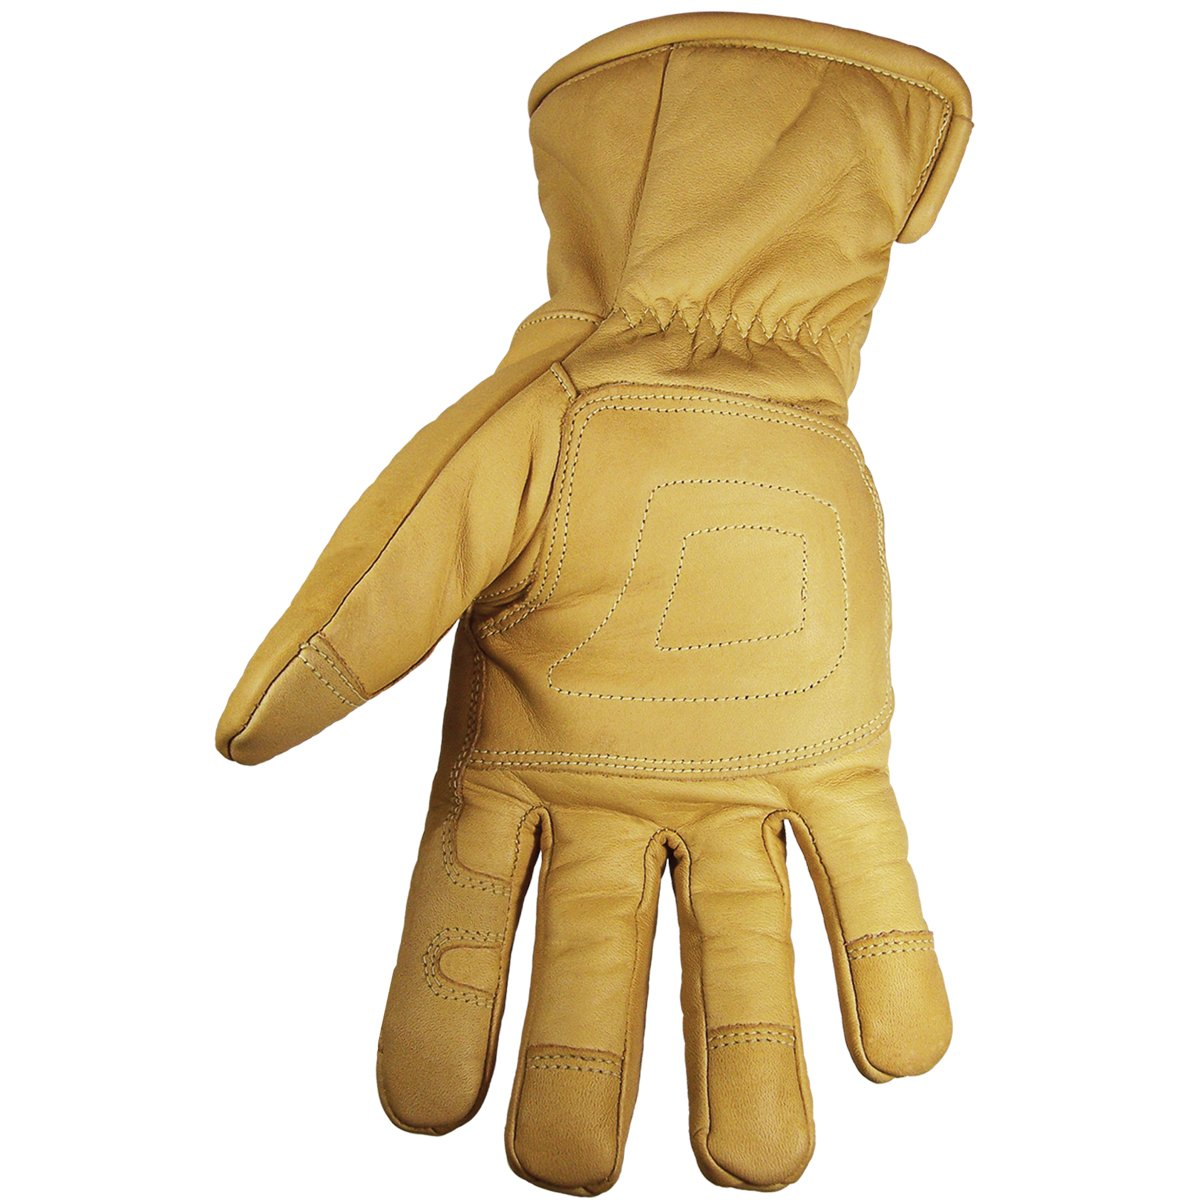 Youngstown Glove 12-3290-60-L Flame Resistant Waterproof Ultimate Lined with Kevlar Gloves, Large by Youngstown Glove Company (Image #2)